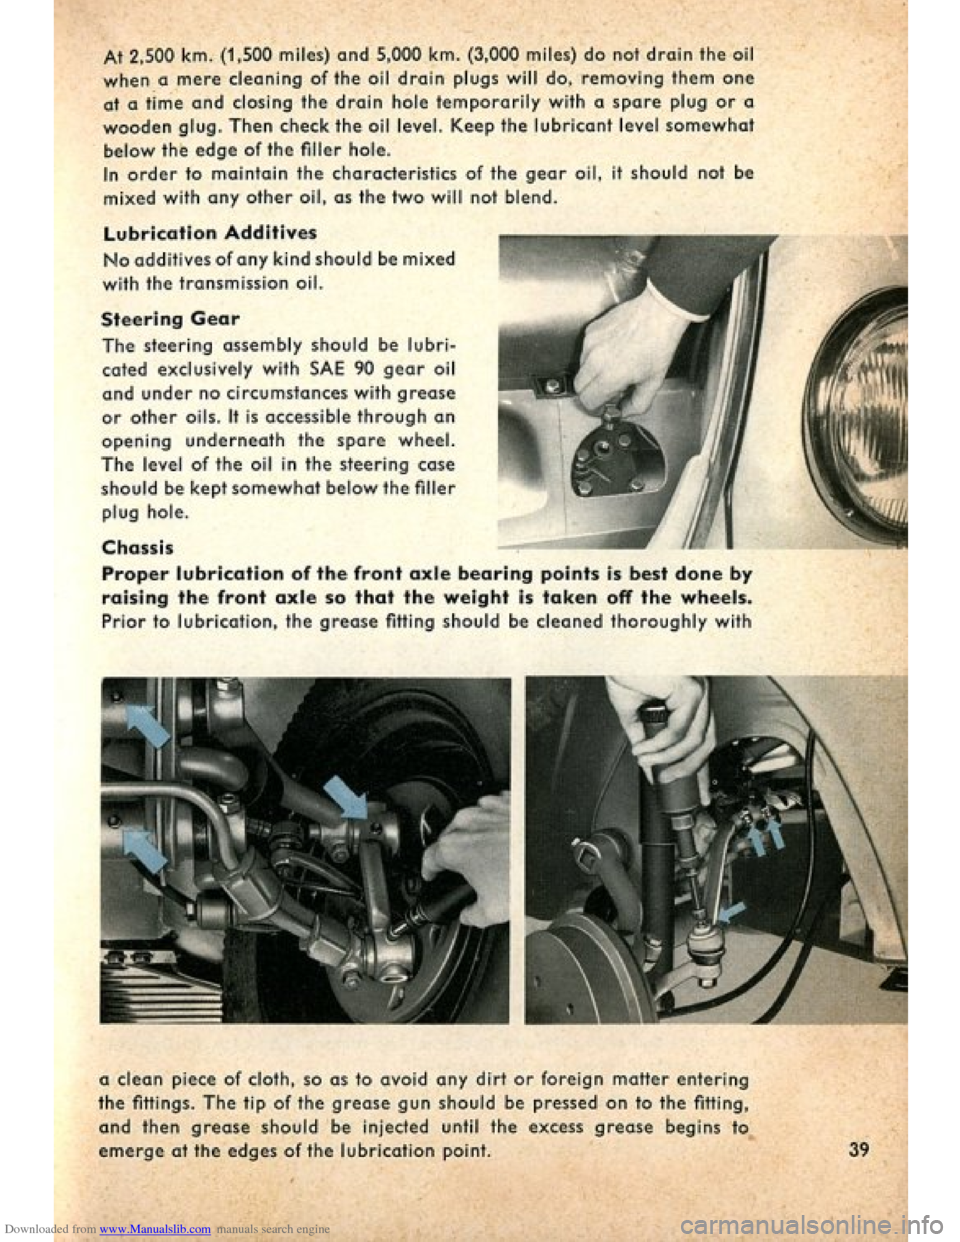 VOLKSWAGEN BEETLE 1960 1.G Owners Manual, Page 41